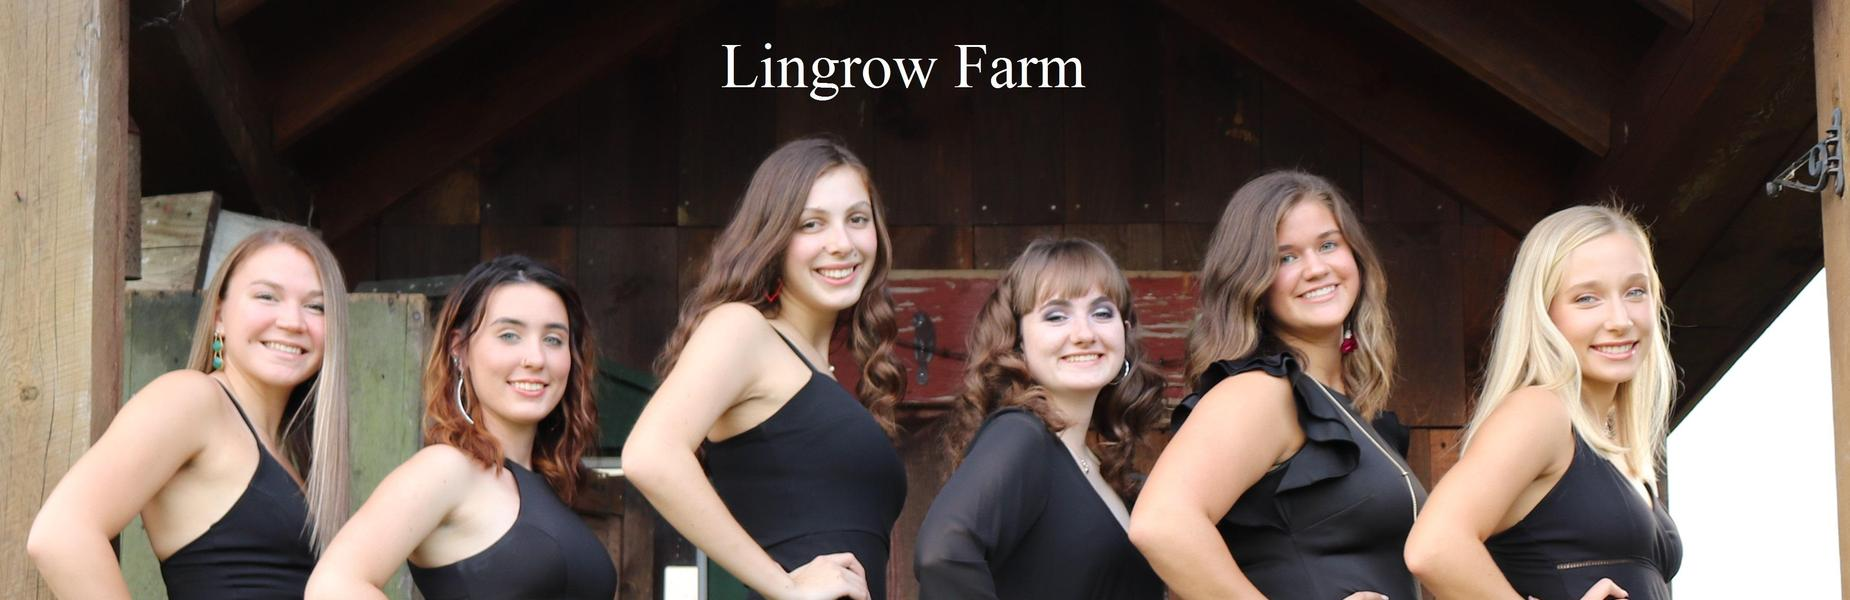 Homecoming 2019 at Lingrow Farm